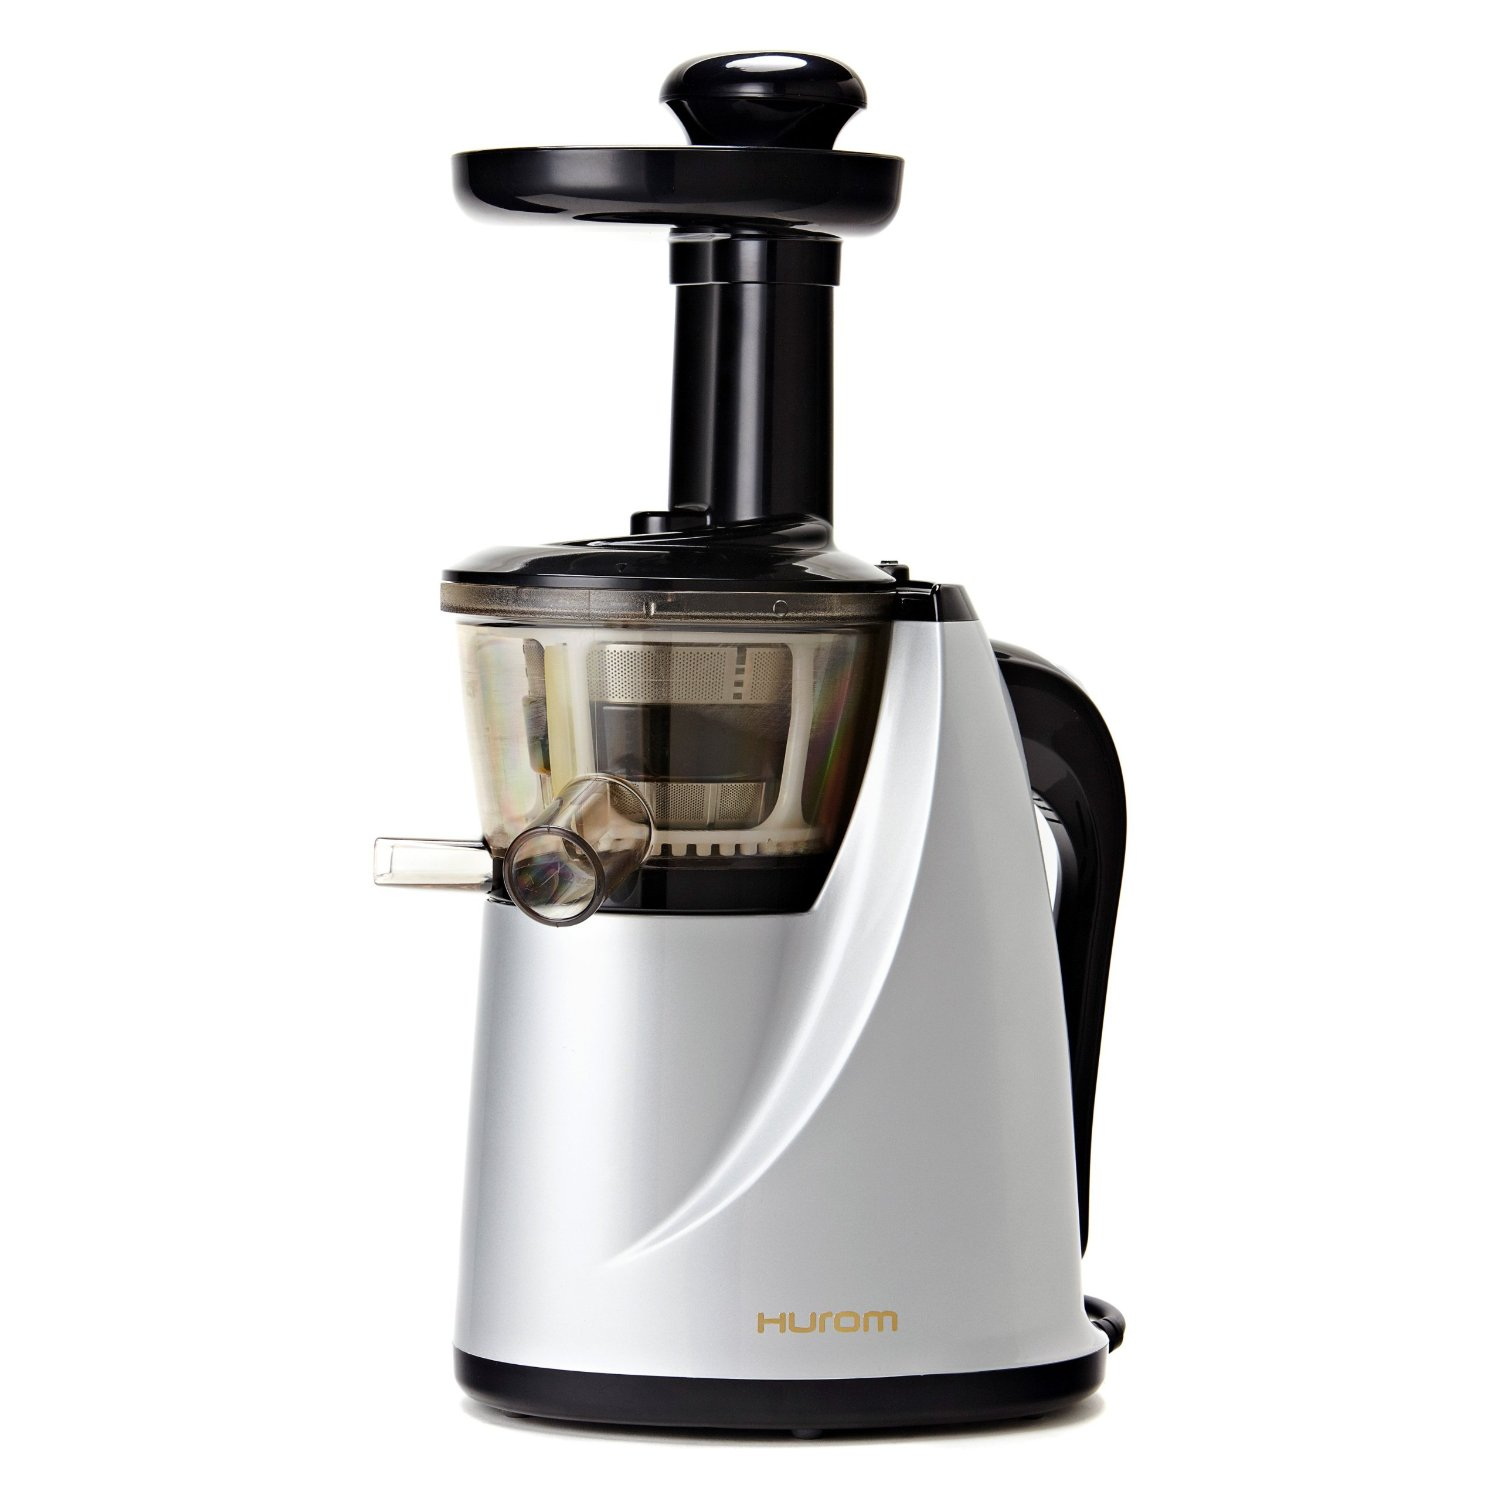 Reviews Of Hurom Slow Juicer : Hurom HU-100 Masticating Slow Juicer Review - Best Cold Press Juicers